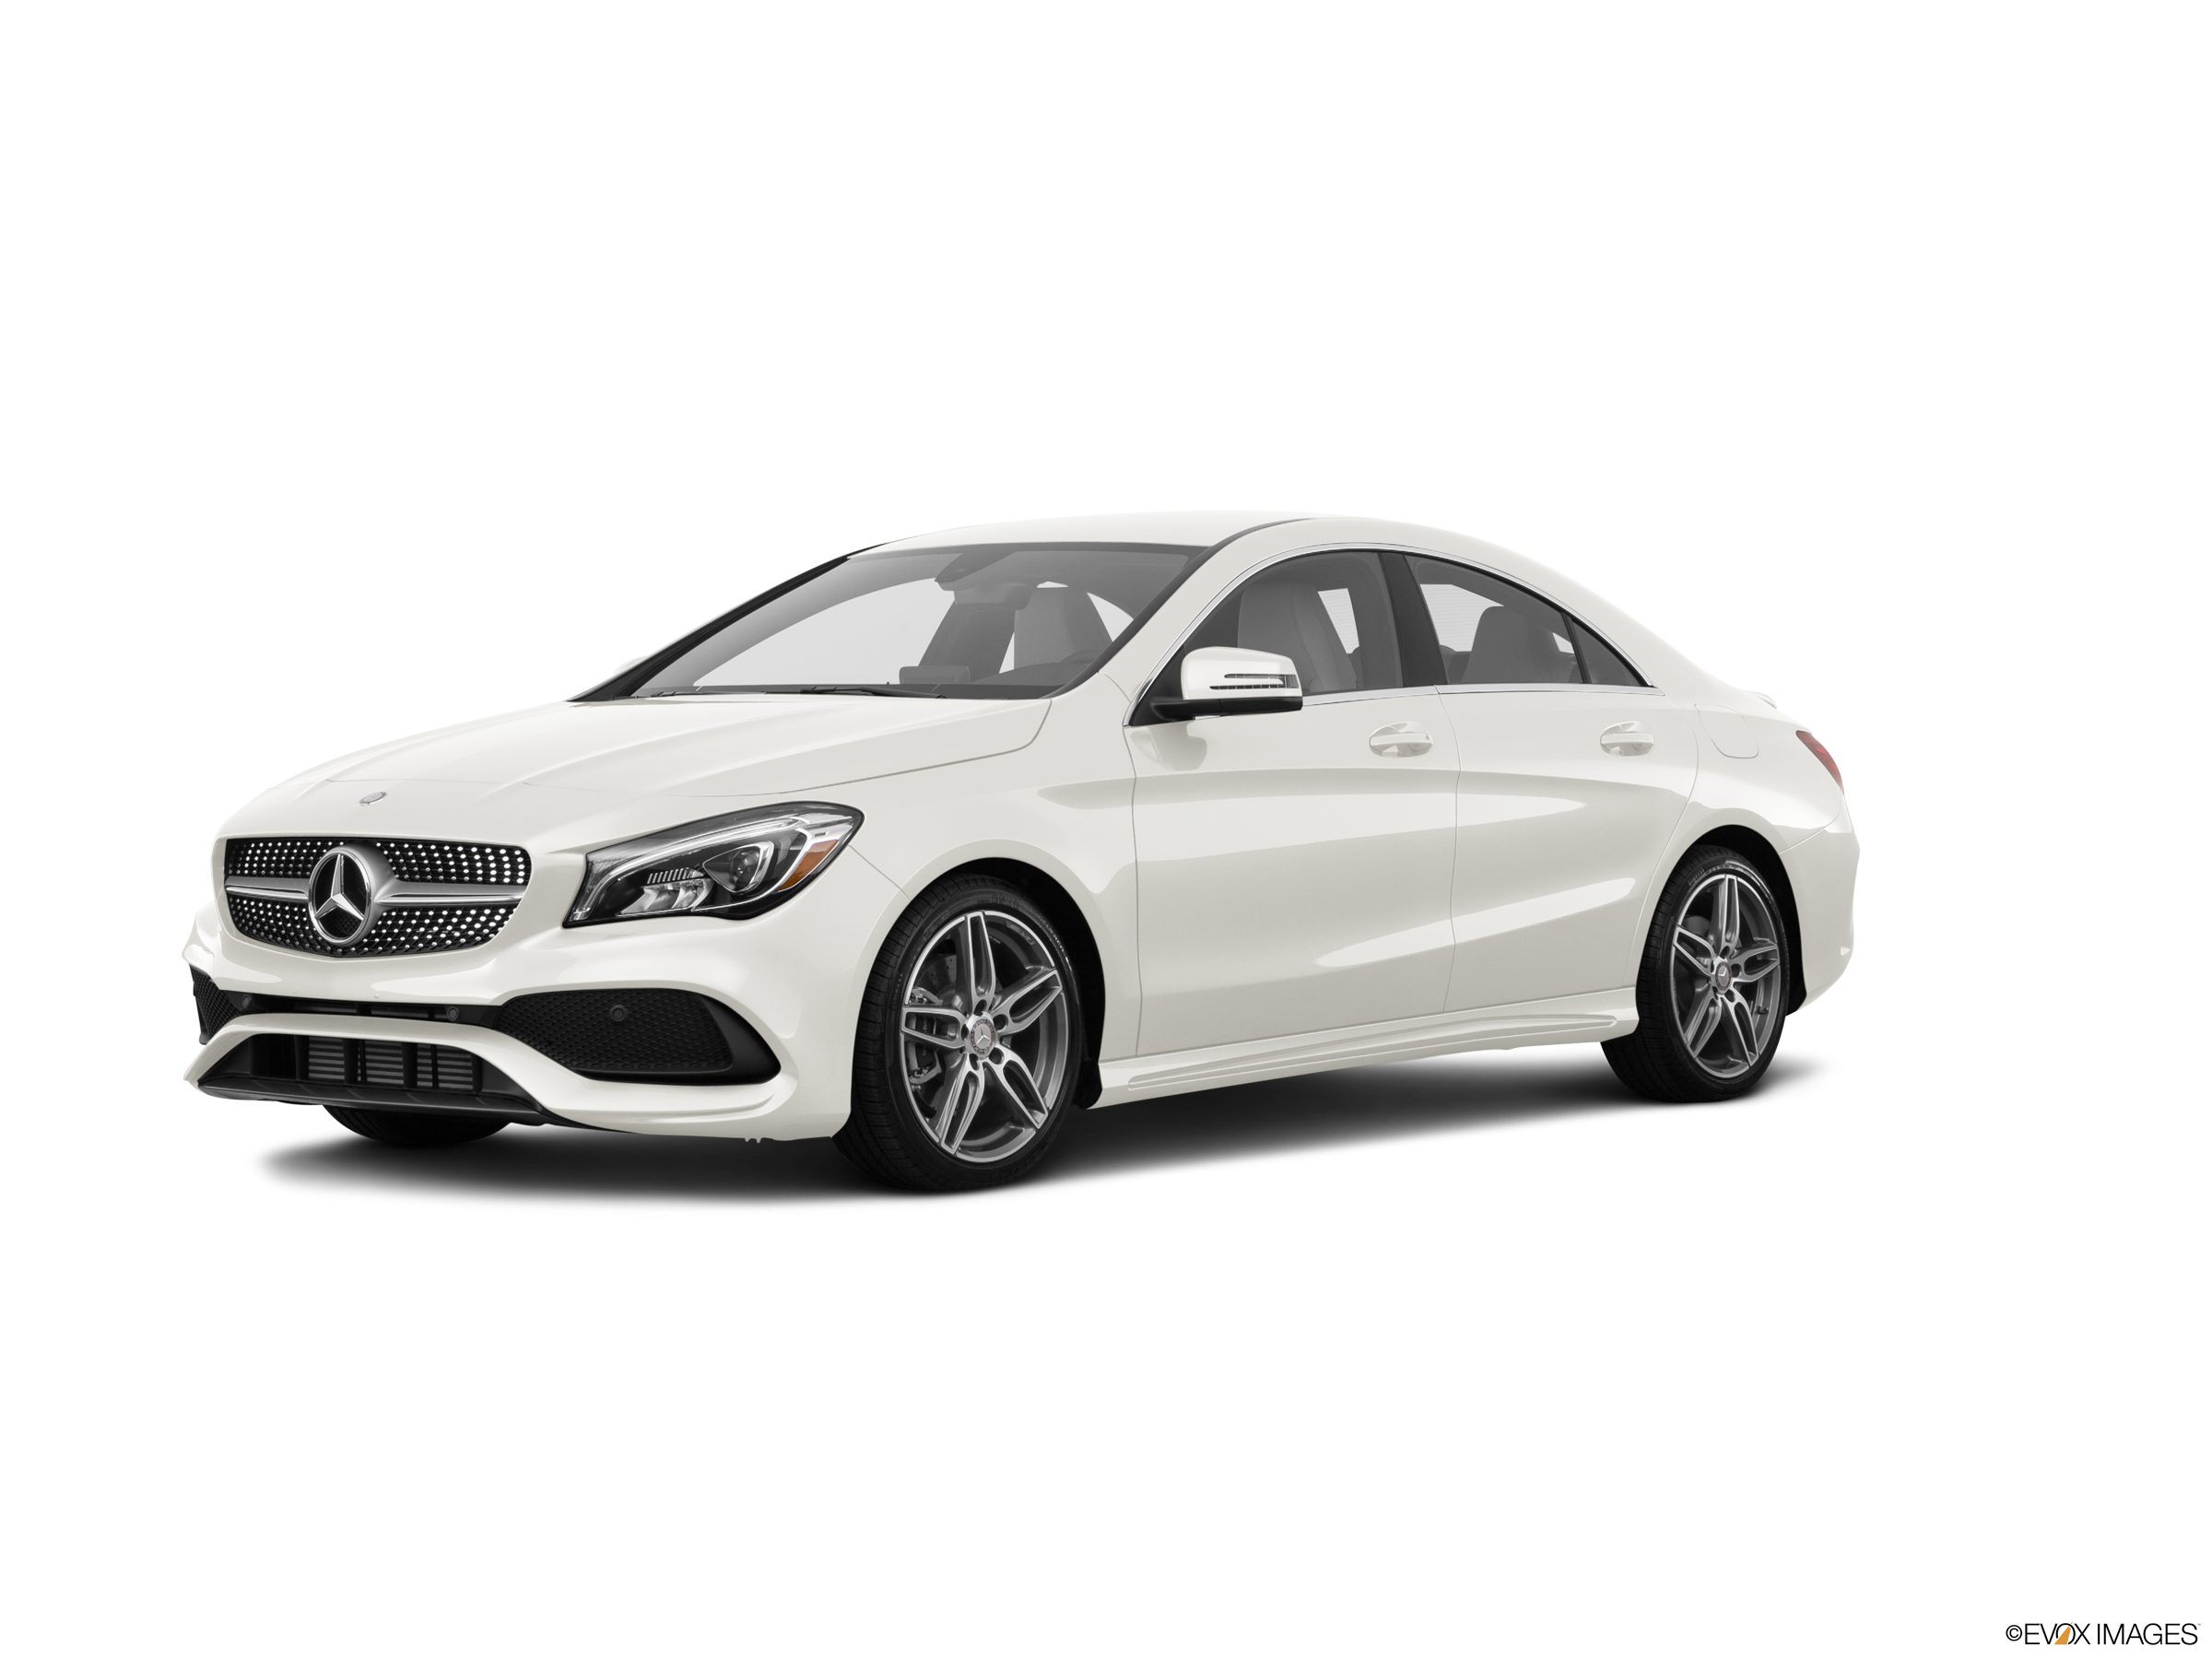 10 Best Luxury Cars Under $35,000 - 2018 Mercedes-Benz CLA